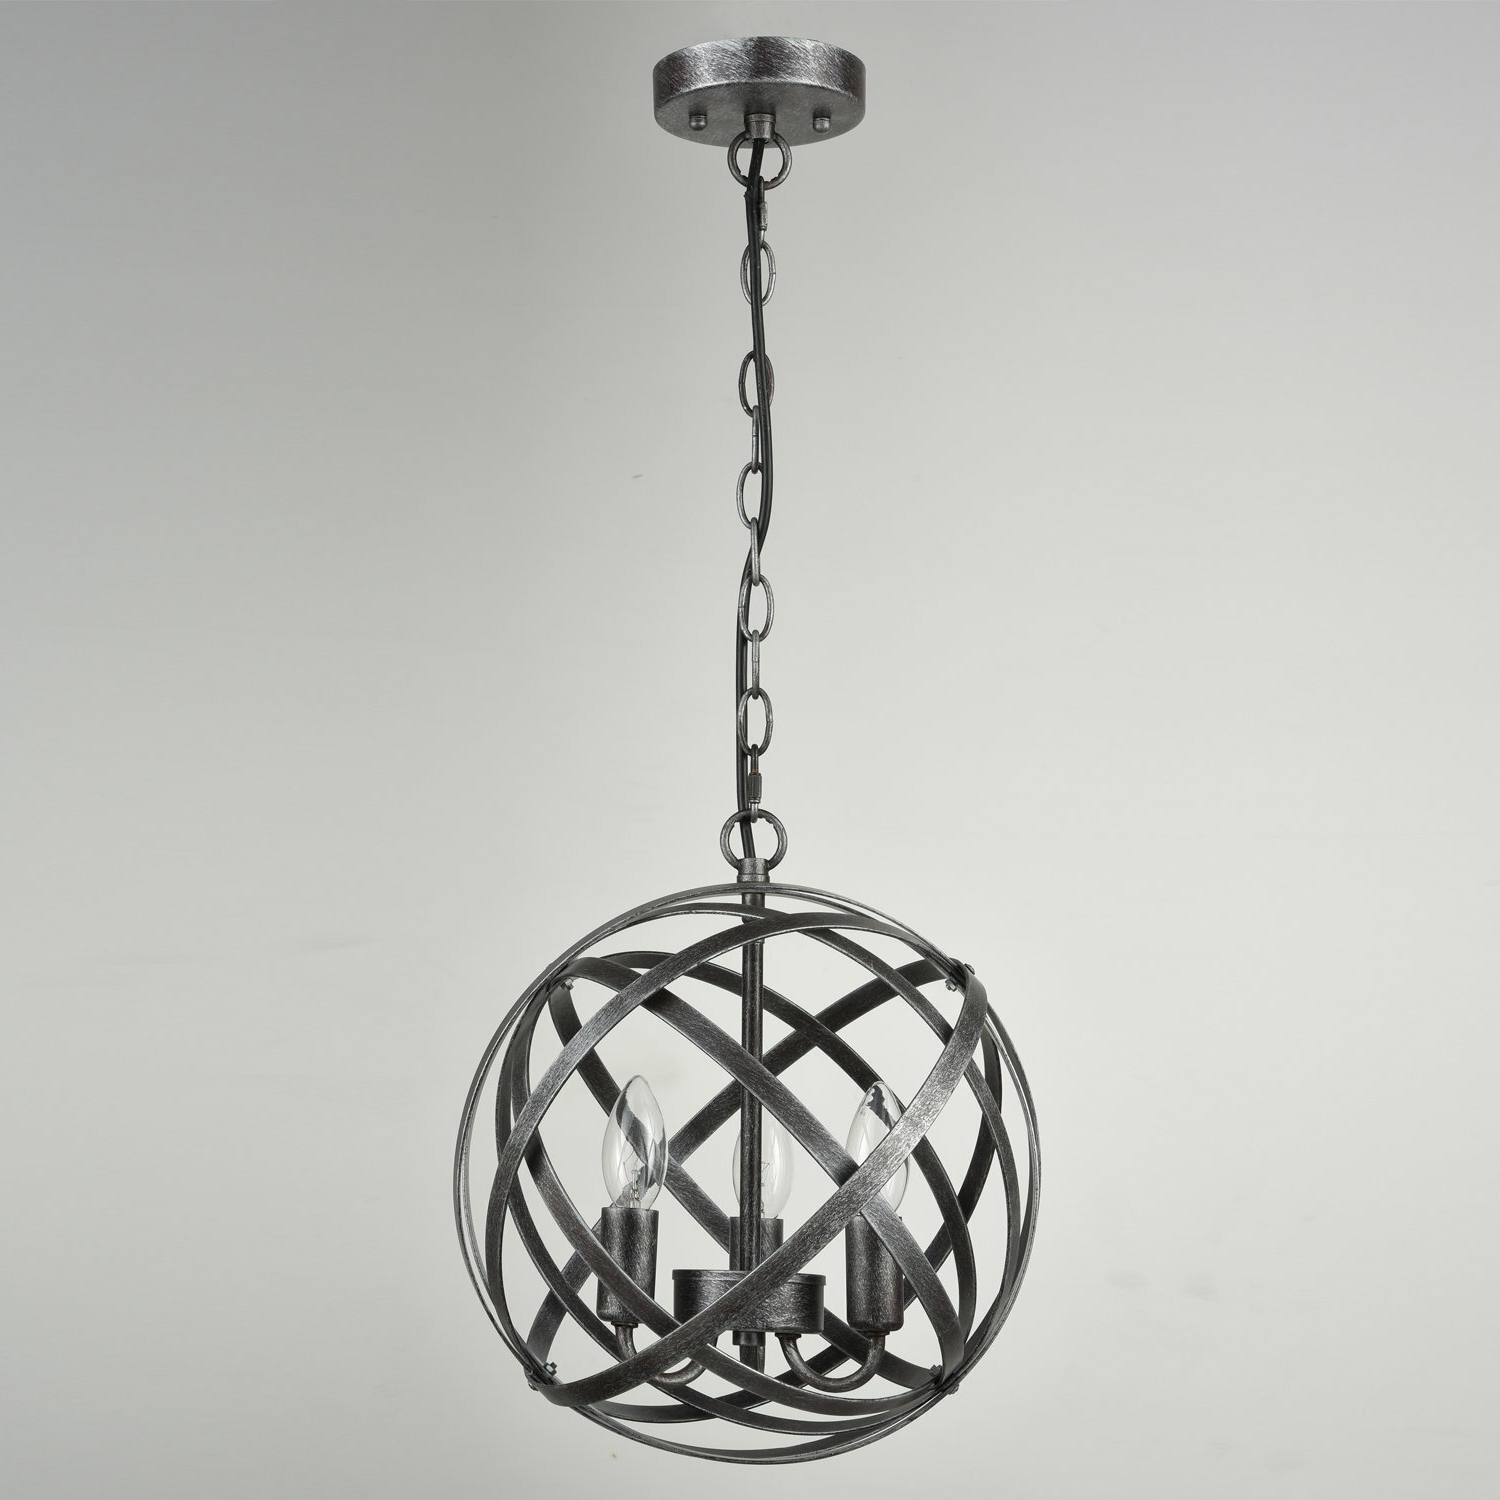 Shipststour 3 Light Globe Chandeliers Throughout Best And Newest Mcinerney Cage 3 Light Globe Chandelier (Gallery 8 of 20)